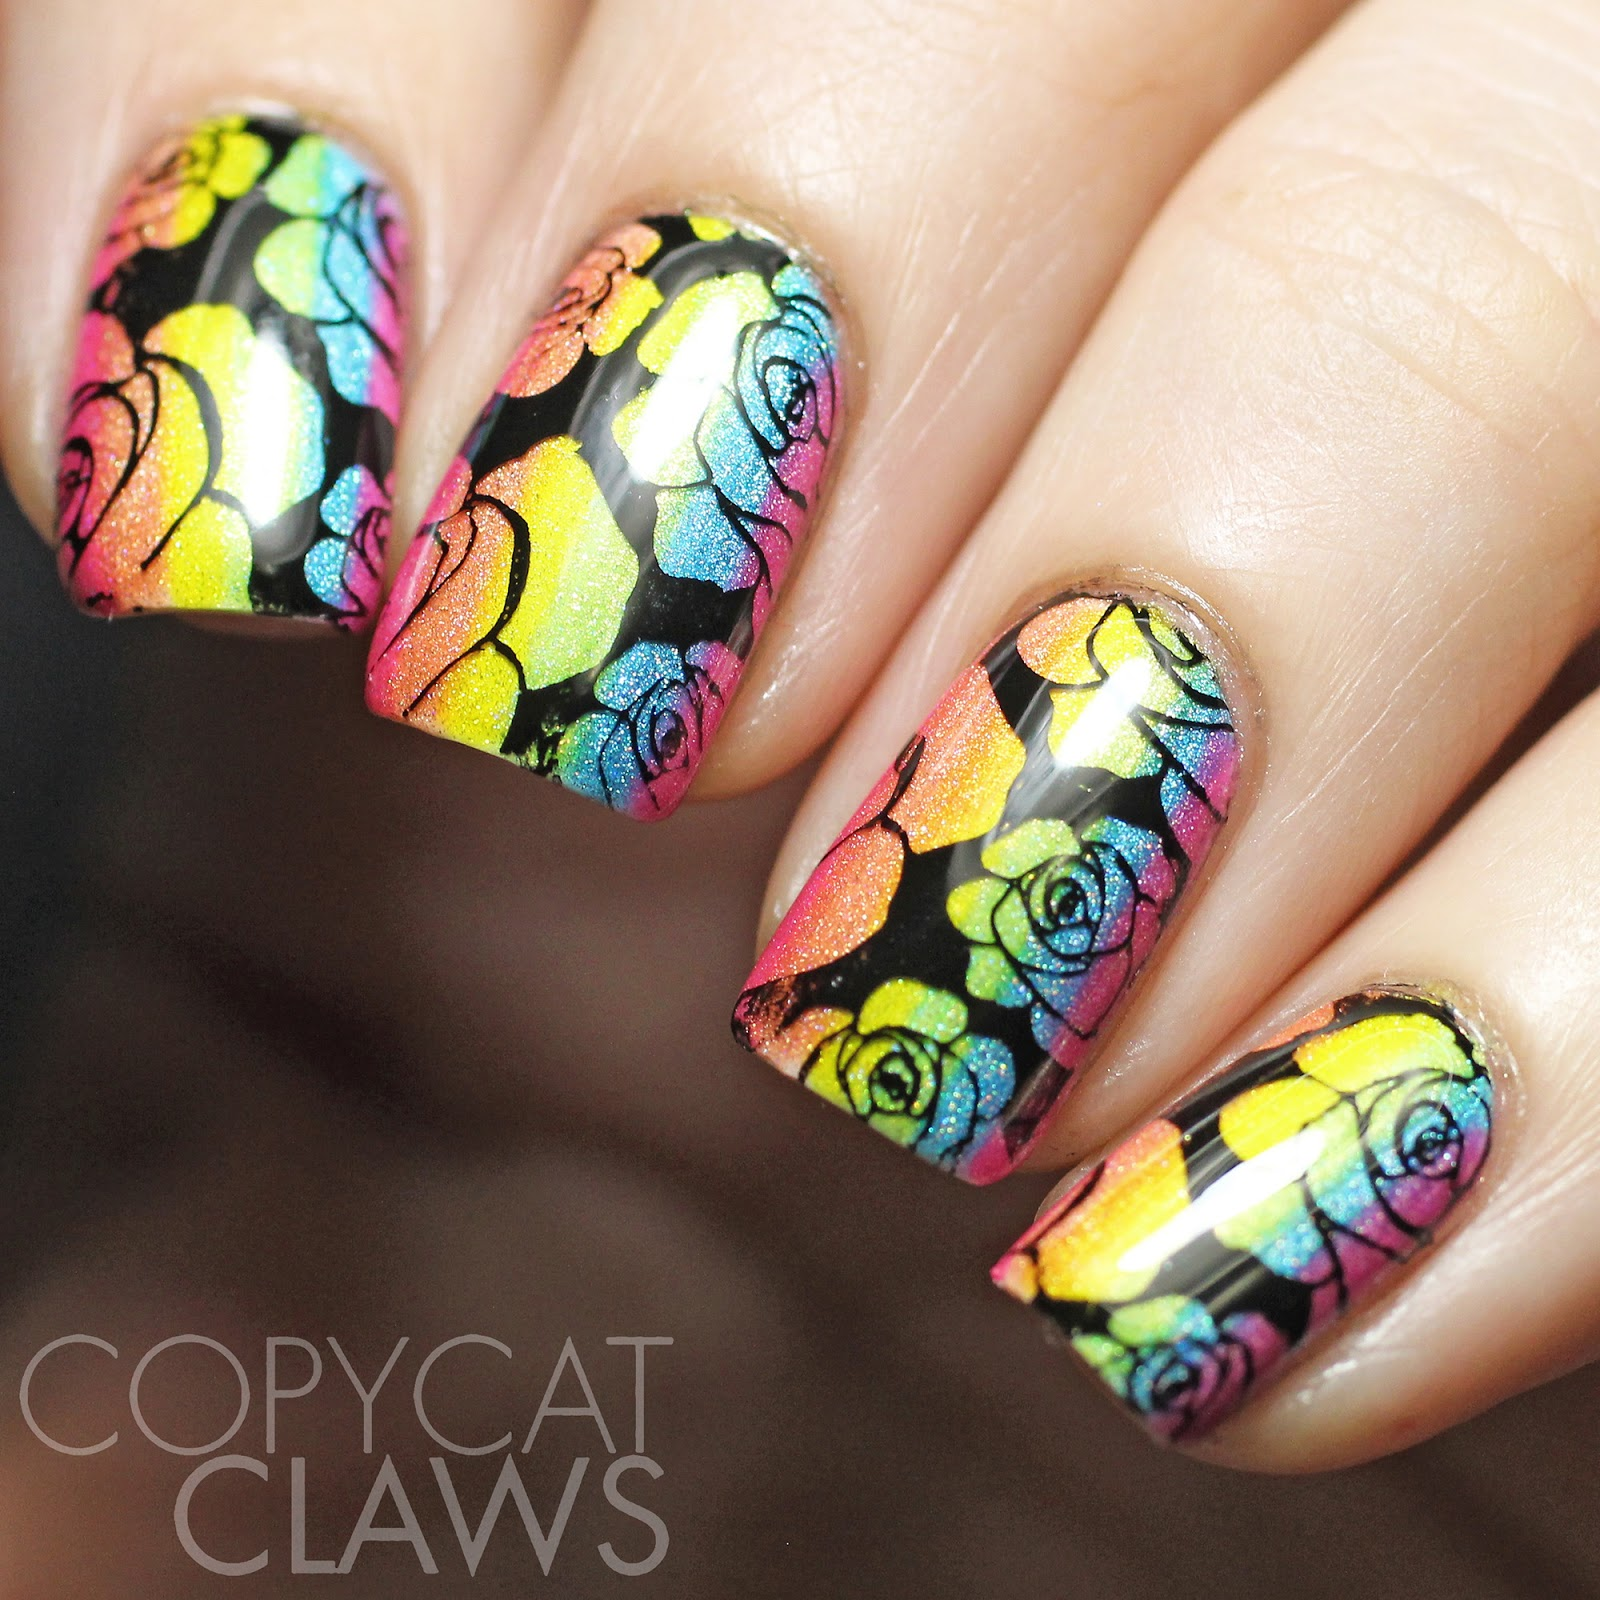 Copycat Claws: Sunday Stamping - Neon Rainbow Roses